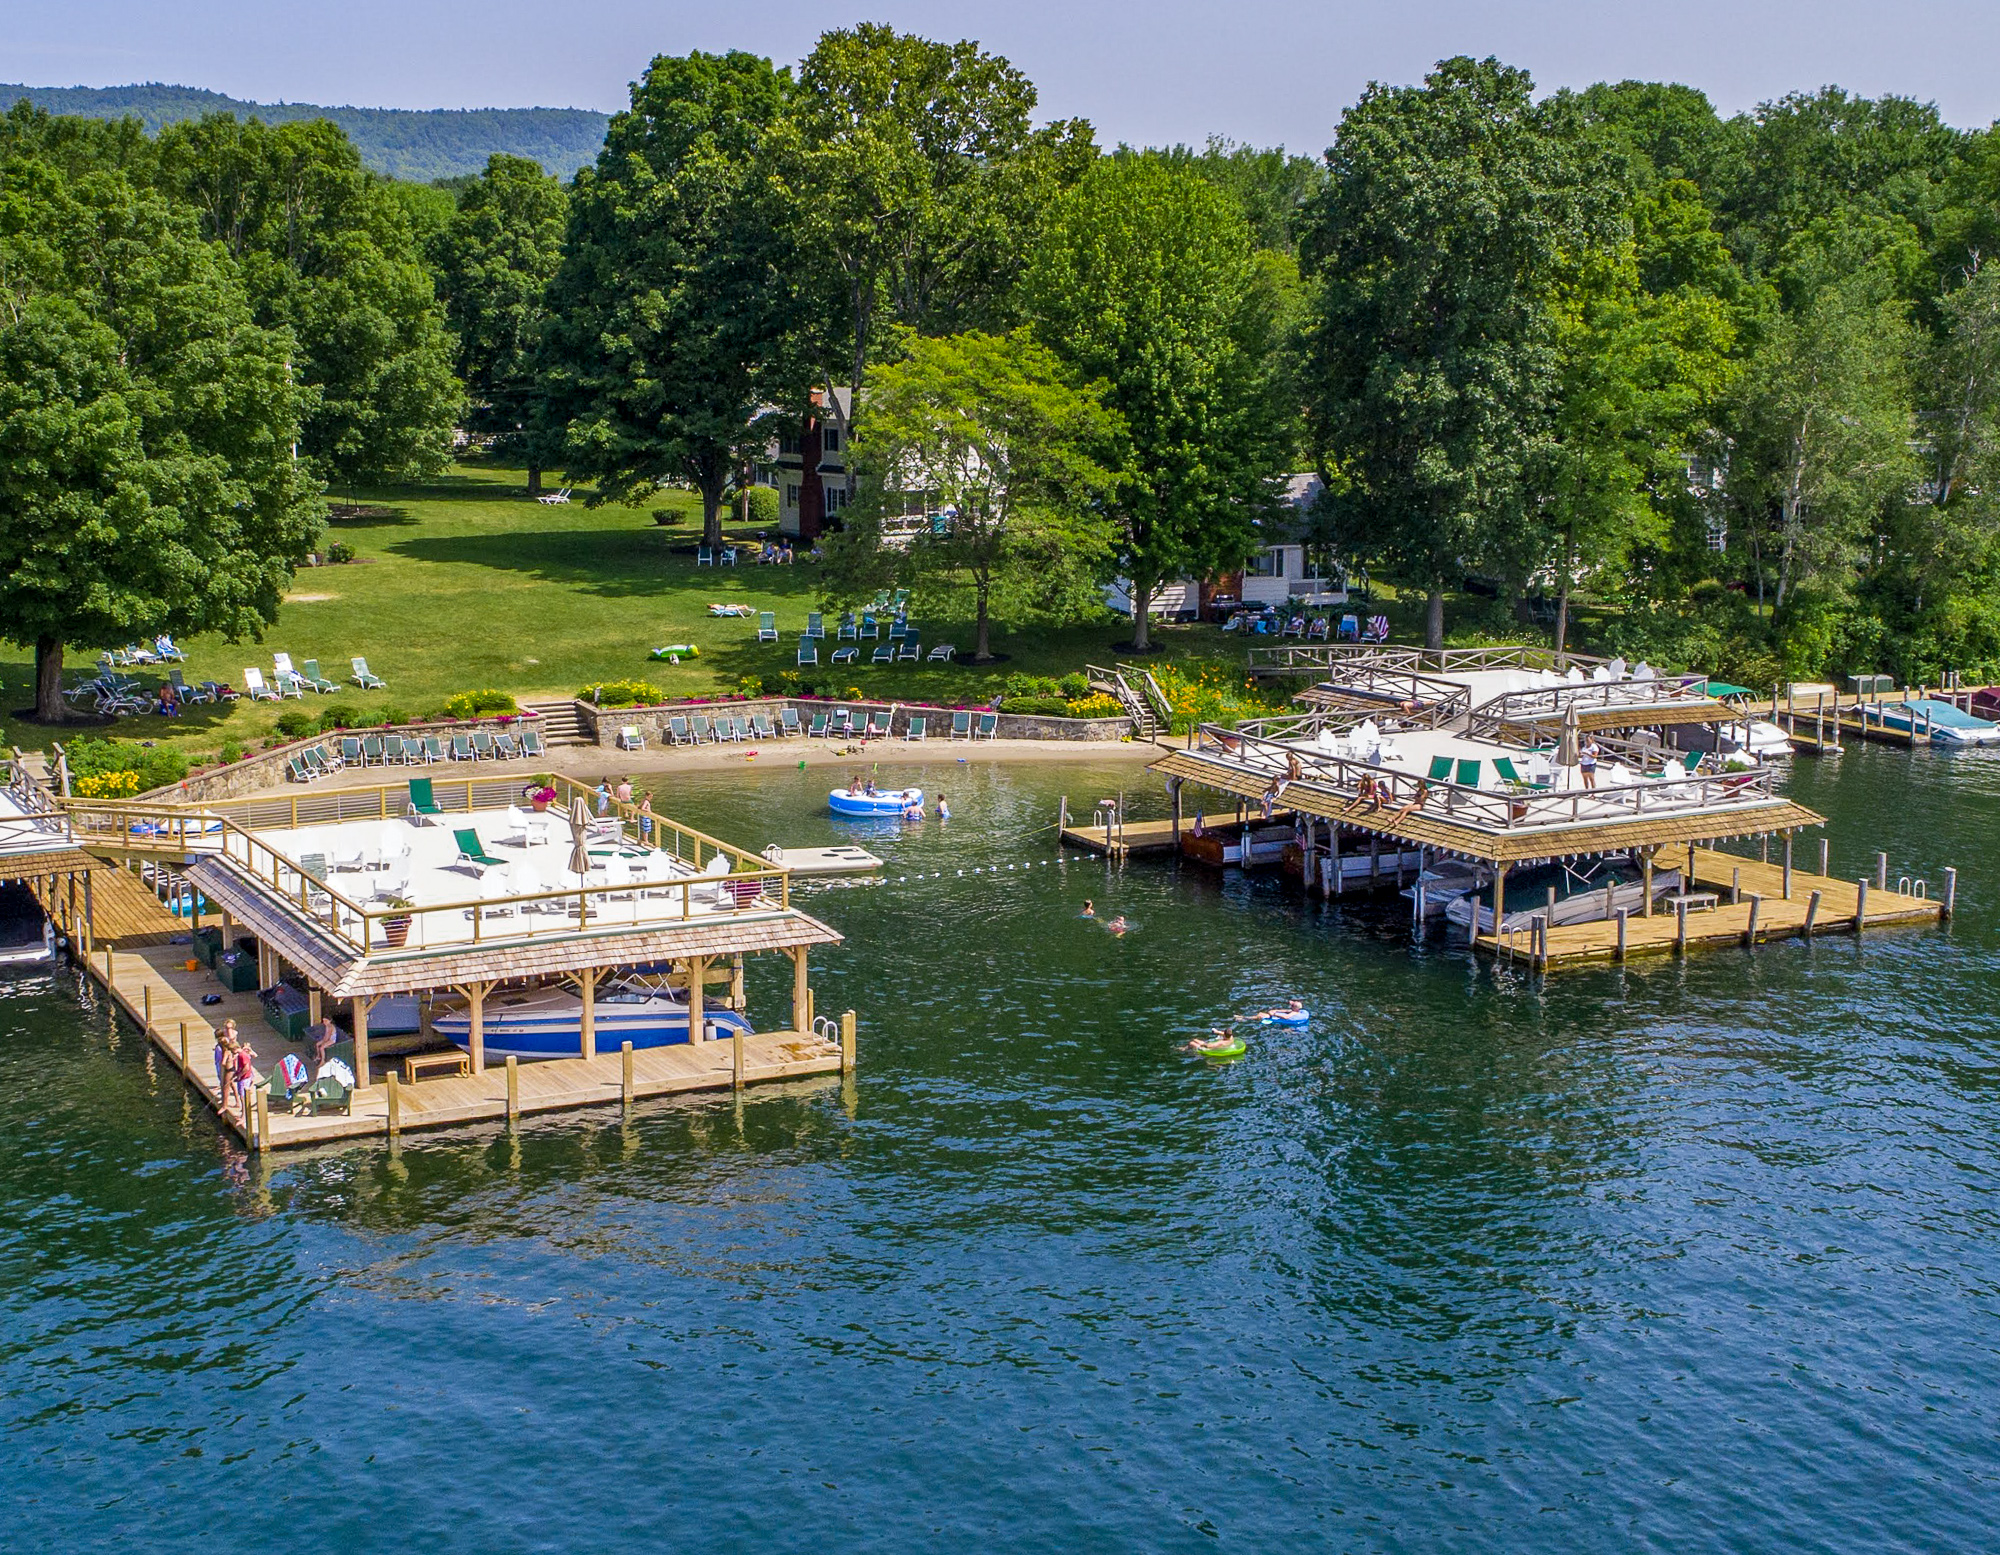 Lake George vacation cabin rentals beach, protected swimming area, and boathouse sundecks at Takundewide Cottages